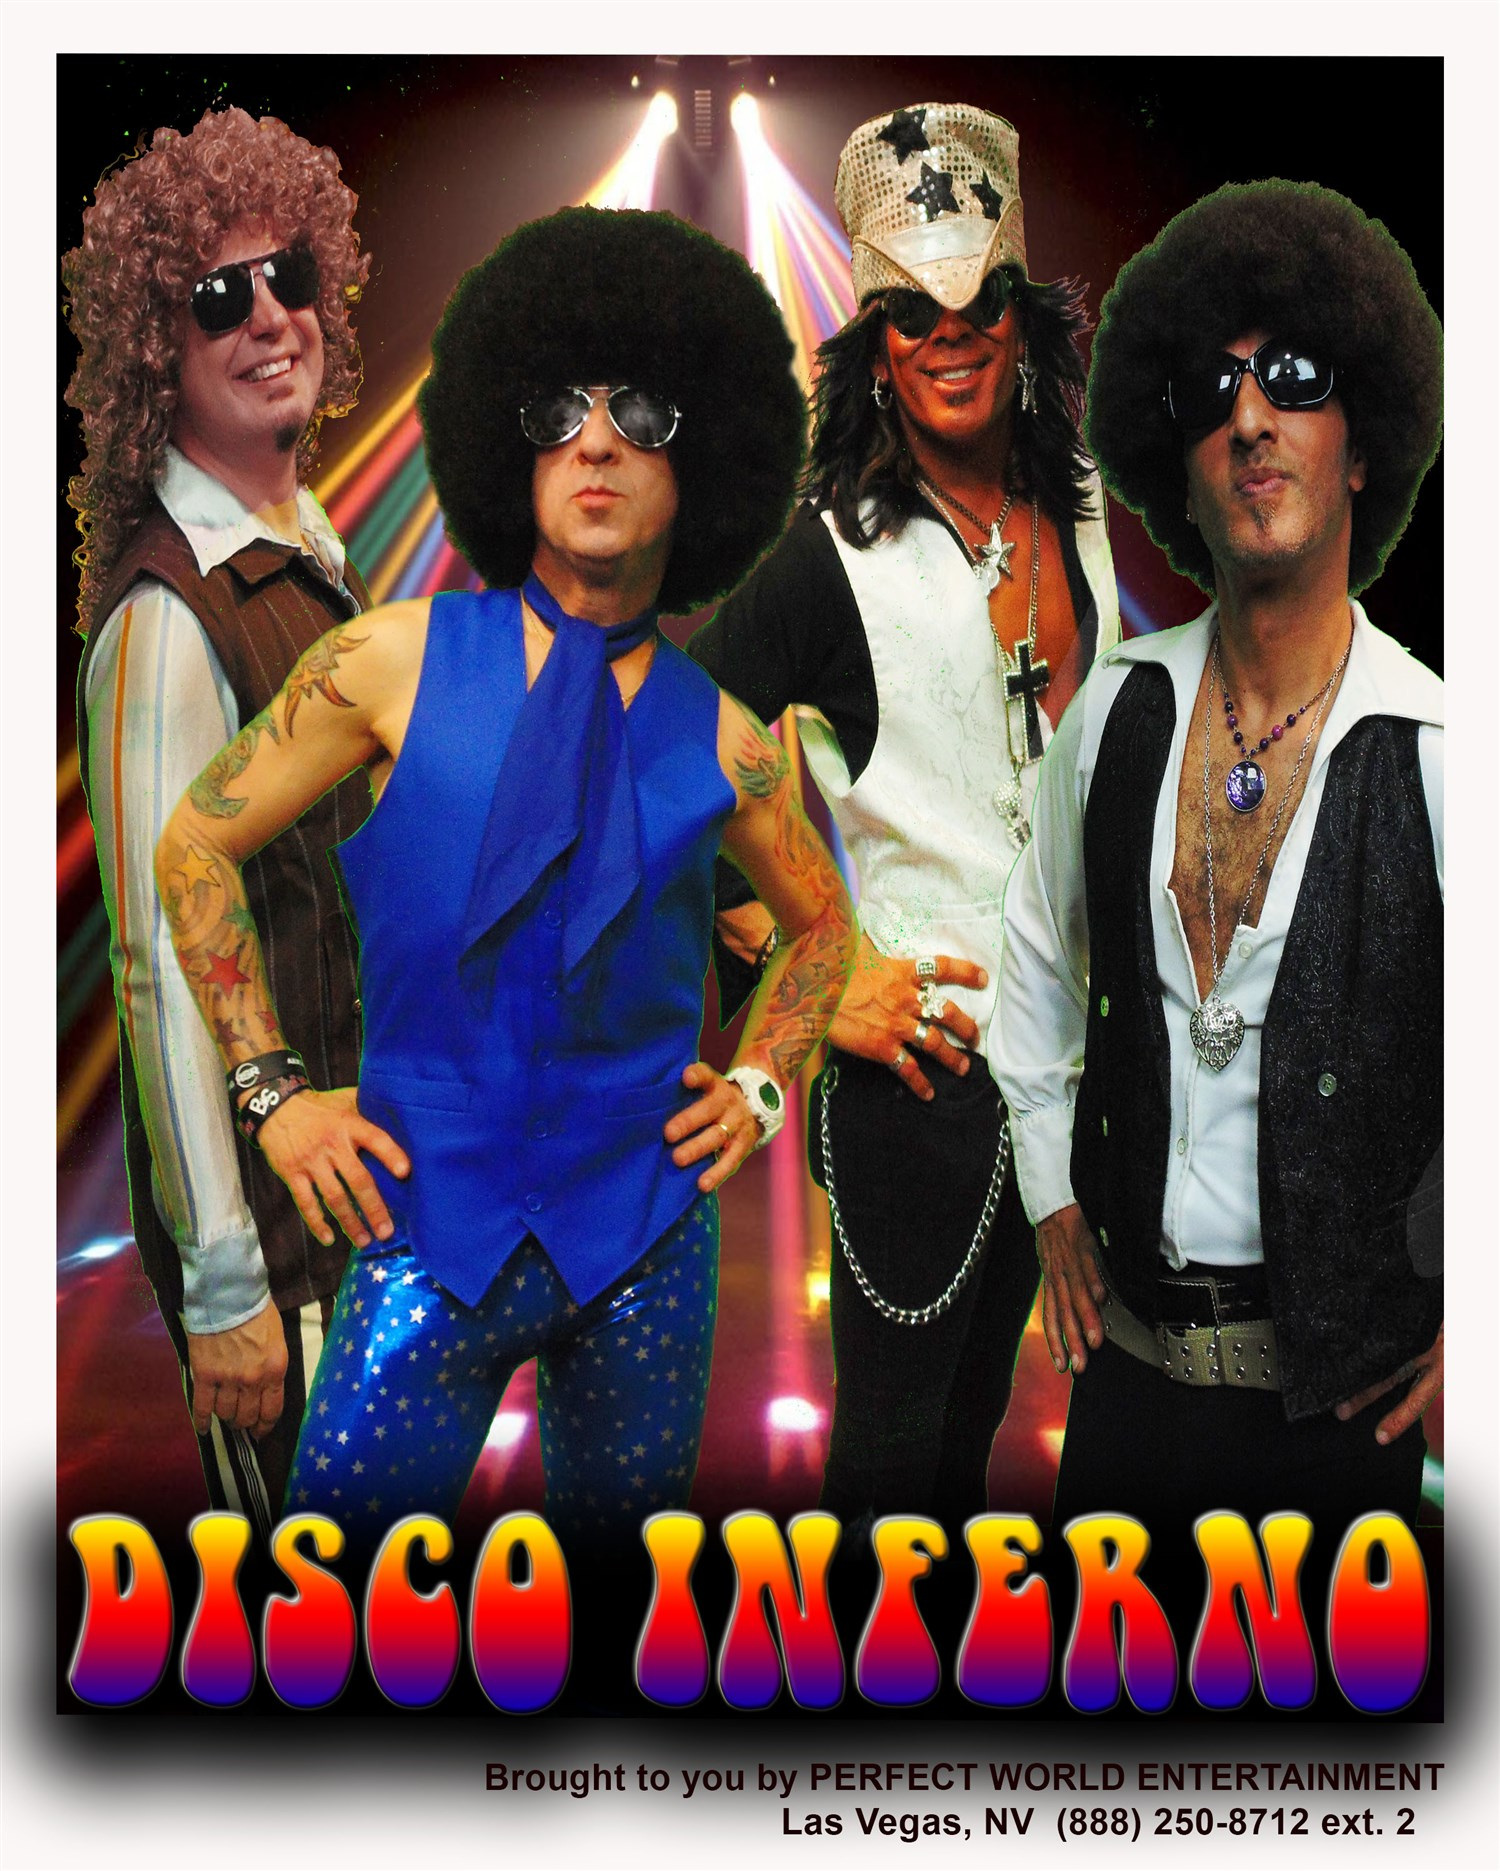 Pavilion @ The Inn Presents: Disco Inferno 2019 Summer Concert Series on Sep 07, 20:00@Aurora Inn Hotel & Event Center - Pick a seat, Buy tickets and Get information on Pavilion @ The Inn